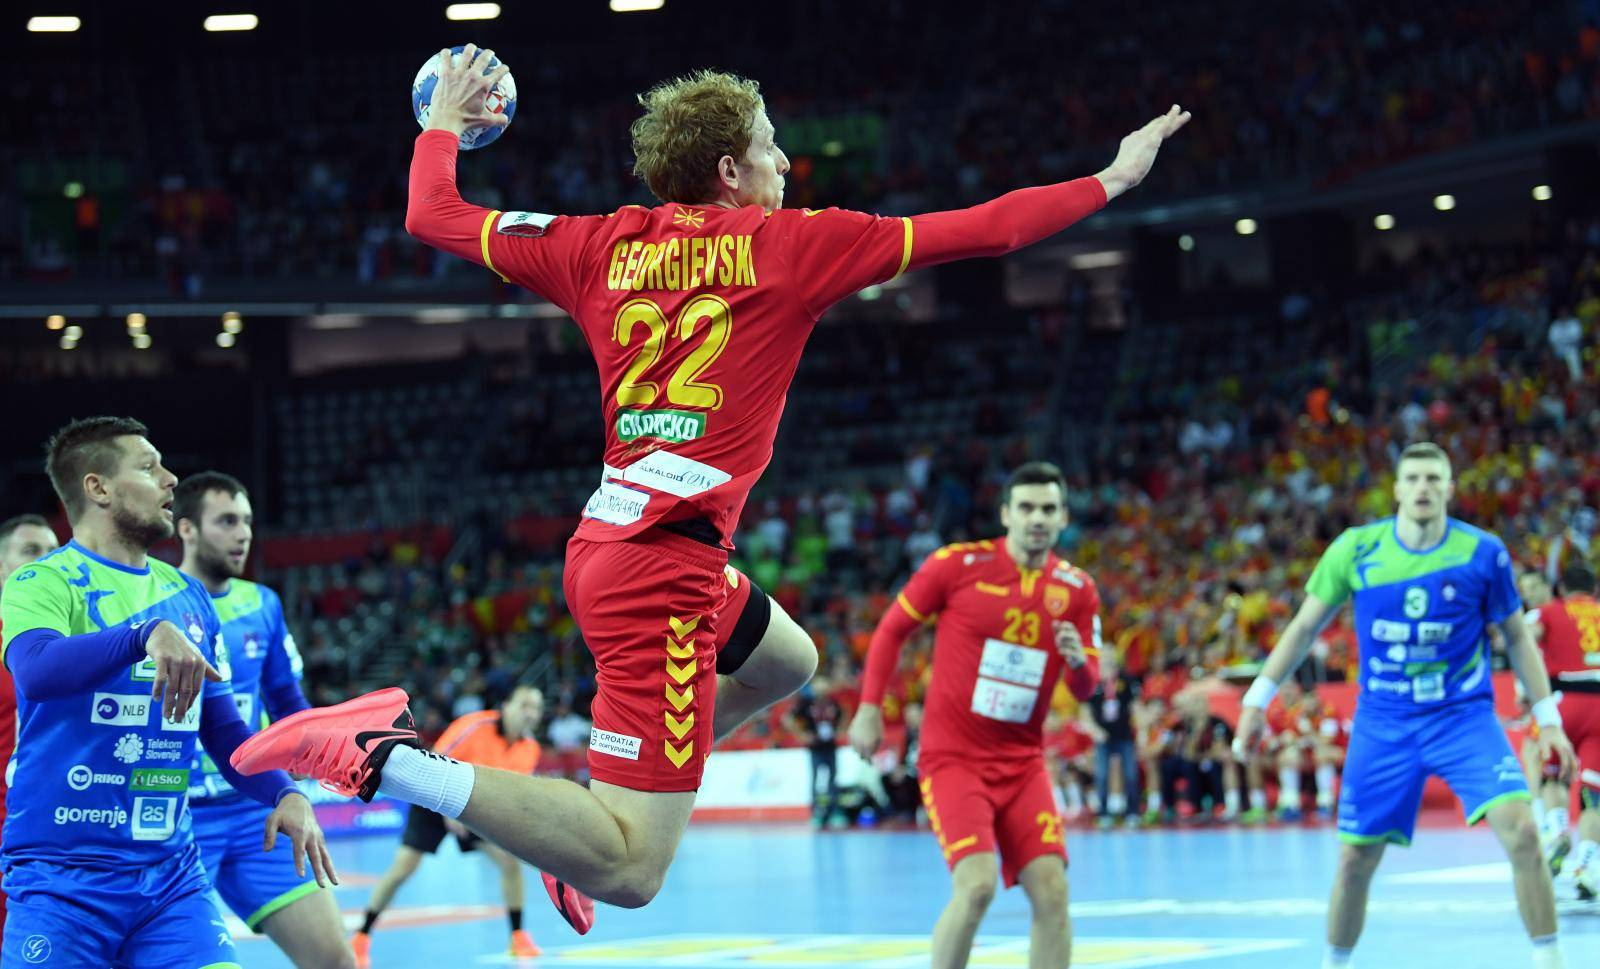 Handball: Macedonia vs Slovenia